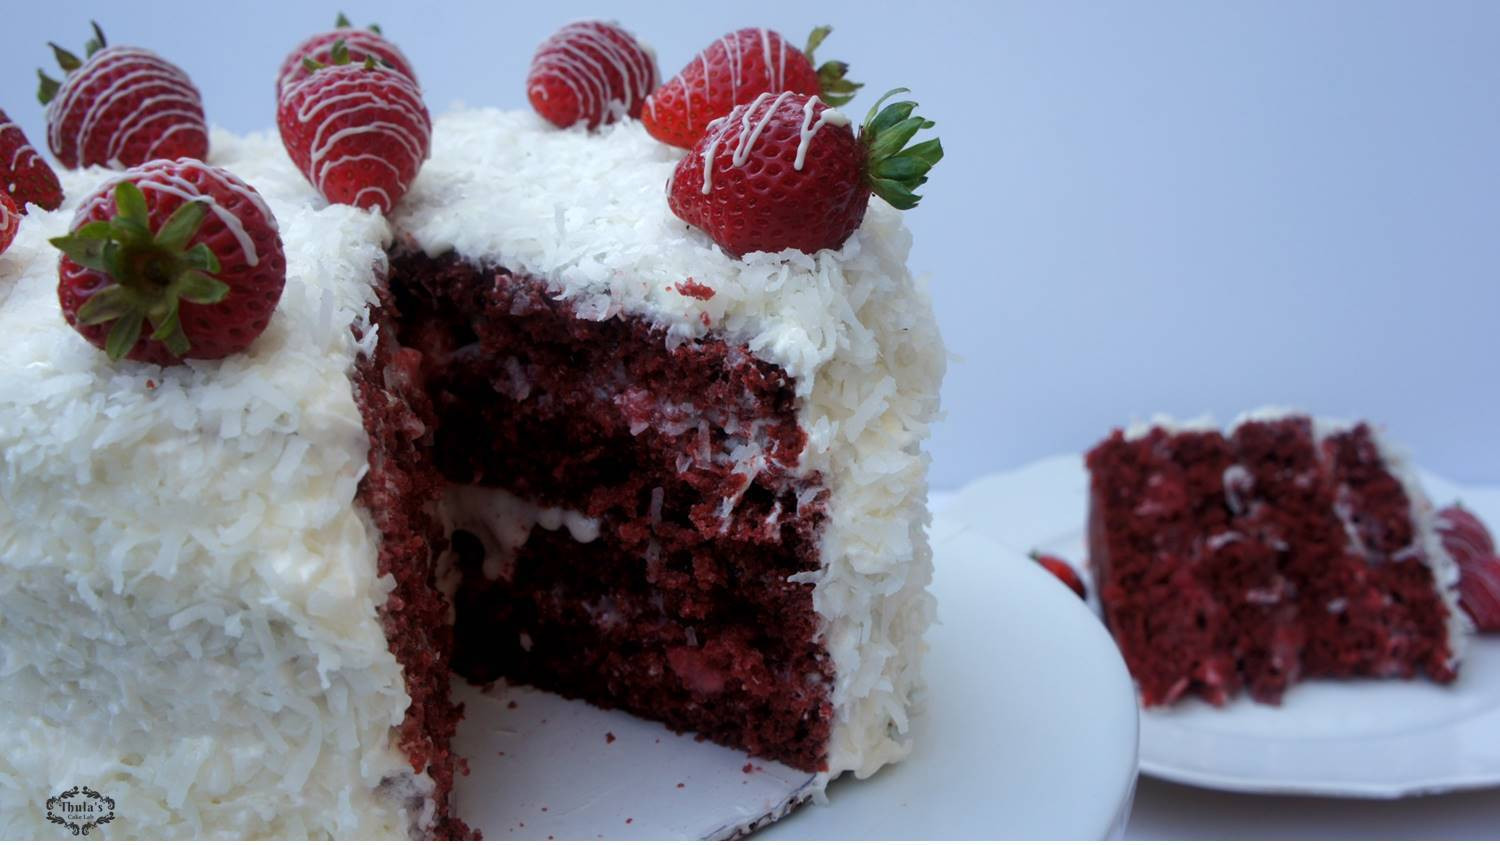 Award Winning Red Velvet Cake Recipe  super moist red velvet cake recipe